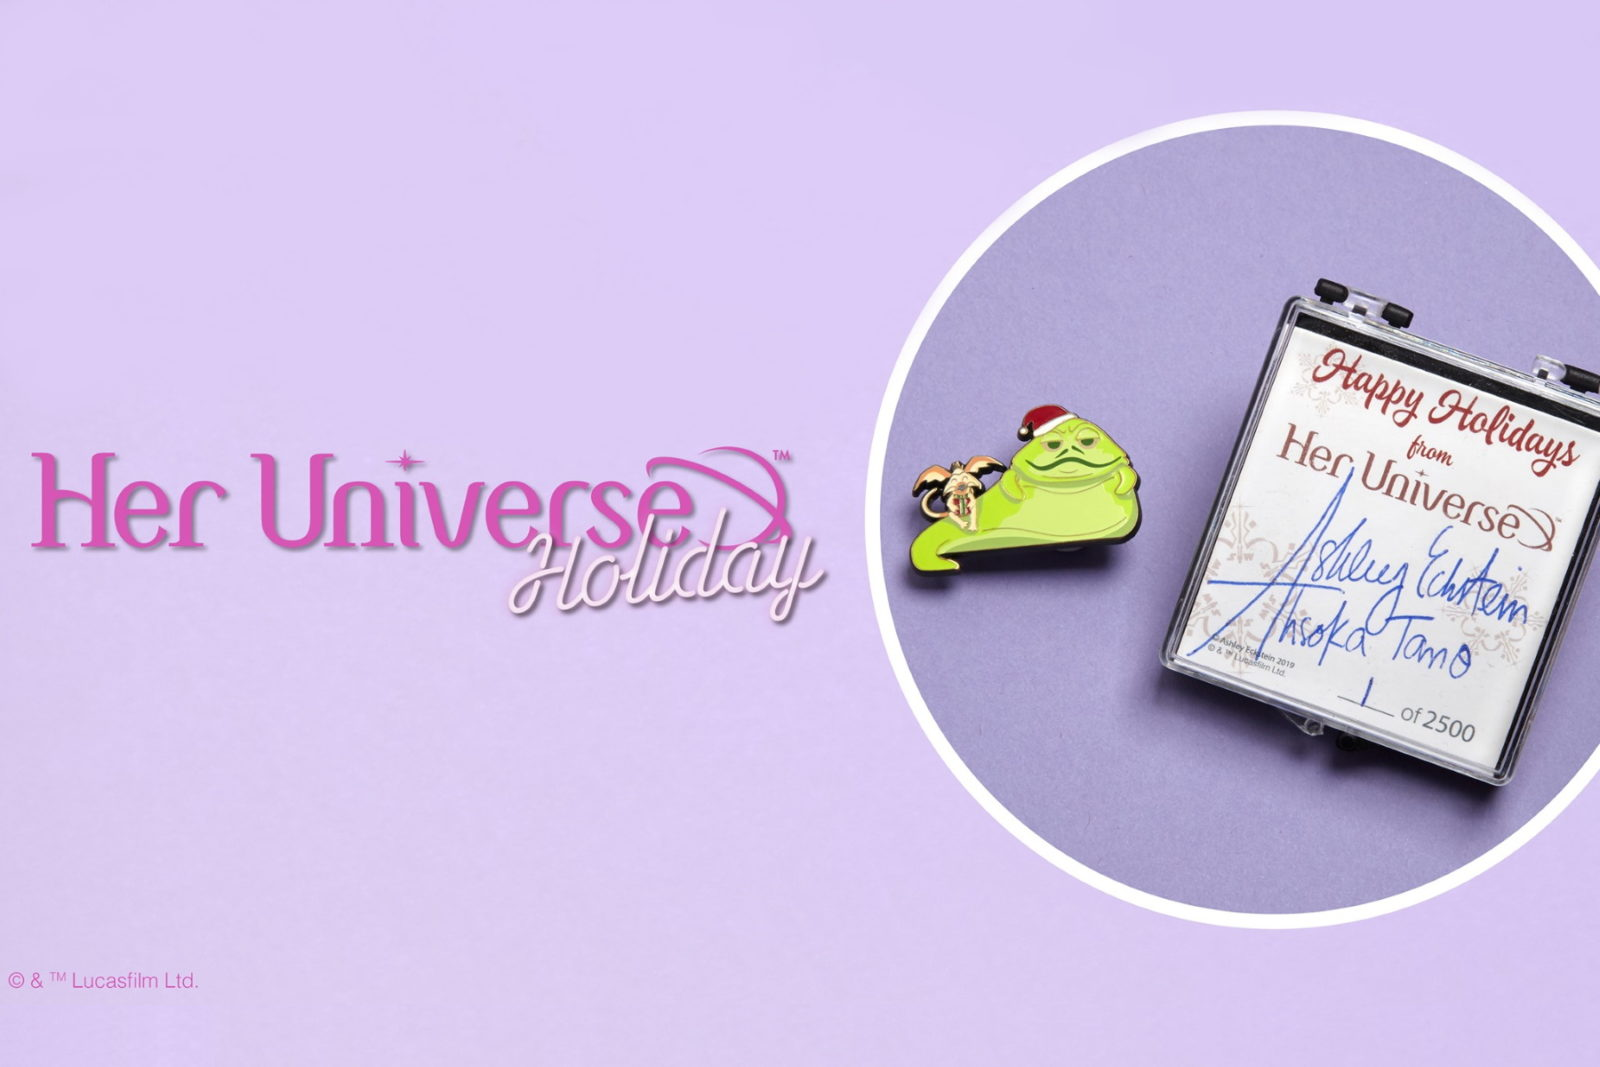 Her Universe Star Wars Holiday Pin 2019